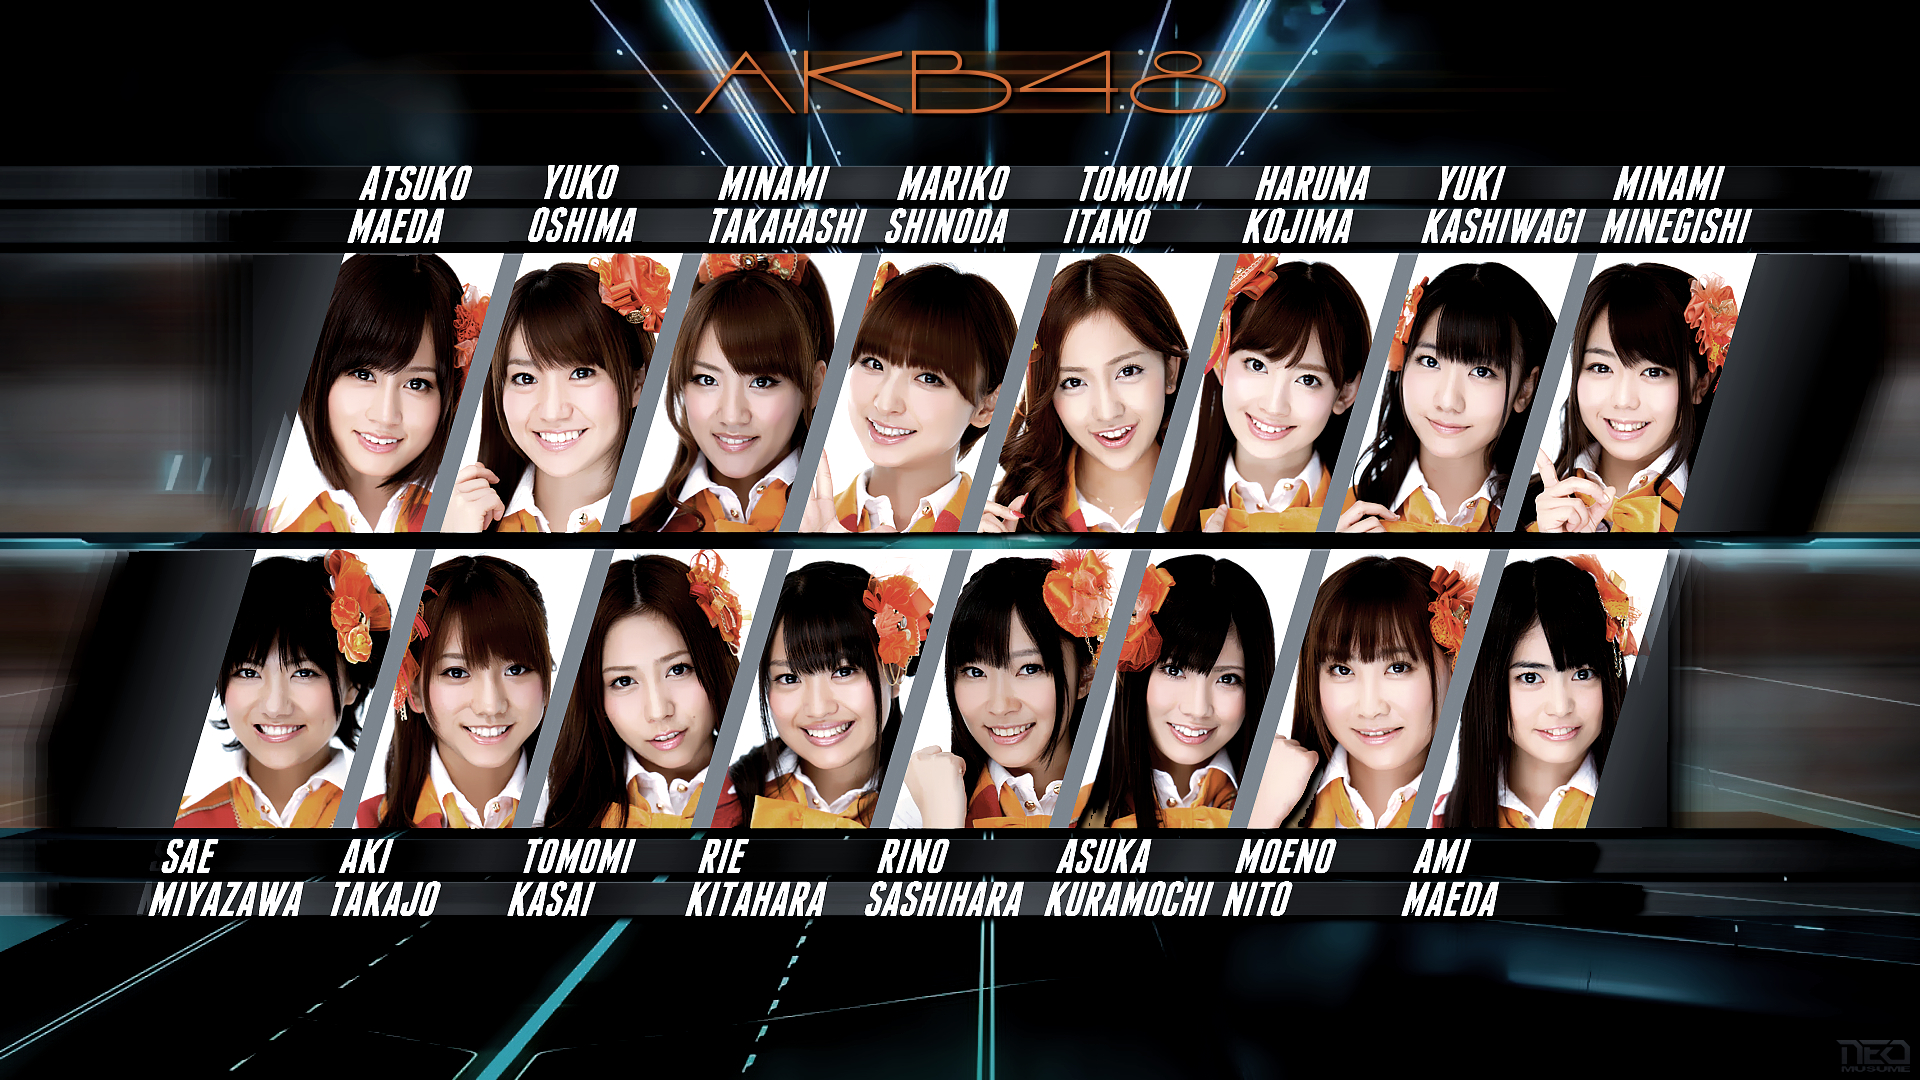 Sad In Love Girl Wallpaper Akb48 And Four Years Later Writing Under The Shades Of Blue